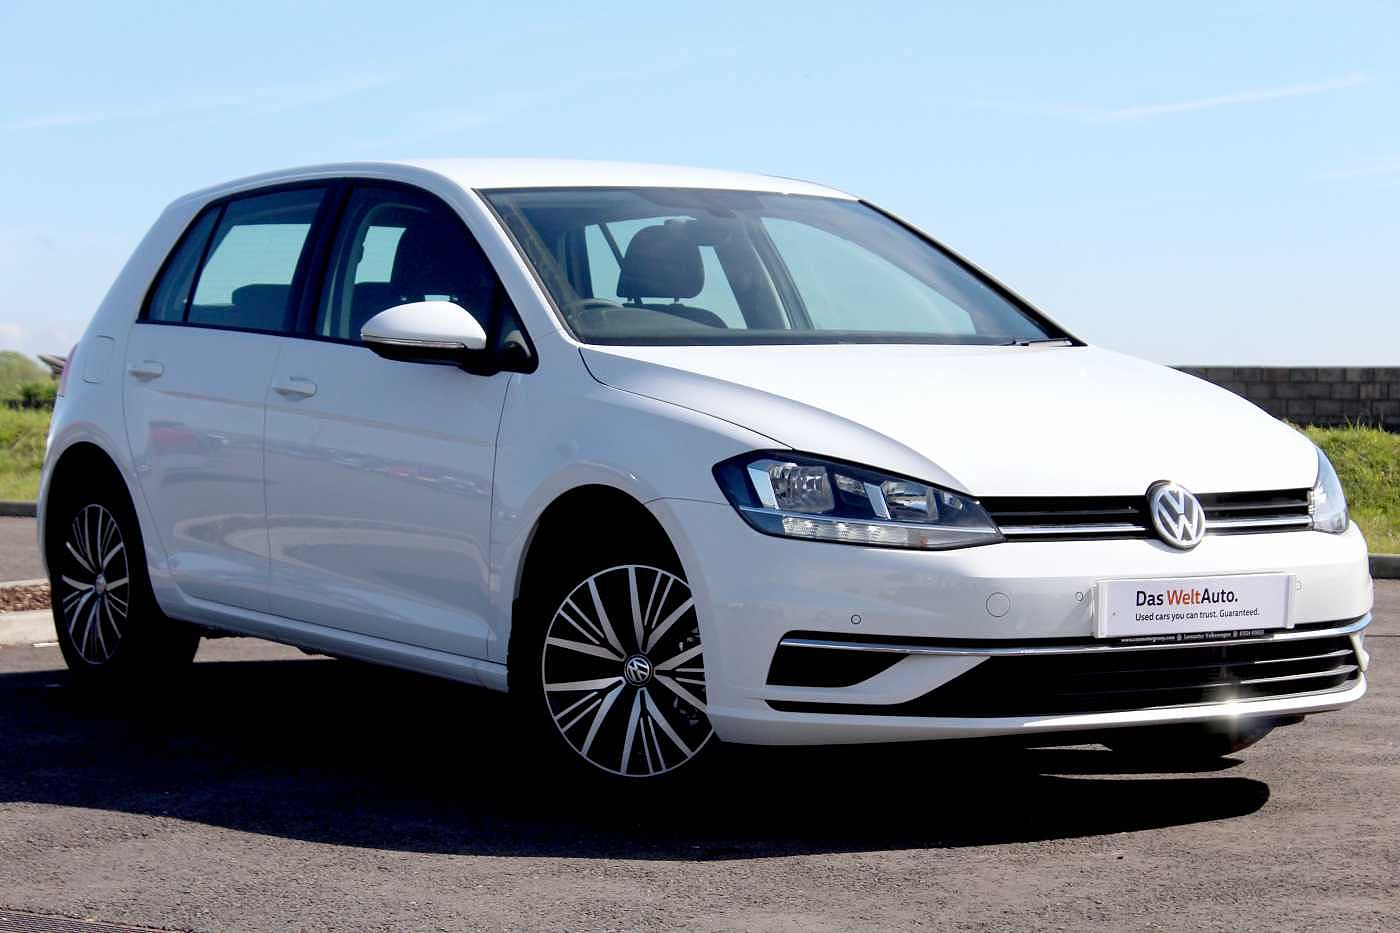 Volkswagen Golf MK7 Facelift 1.6 TDI SE Nav 115PS 5Dr